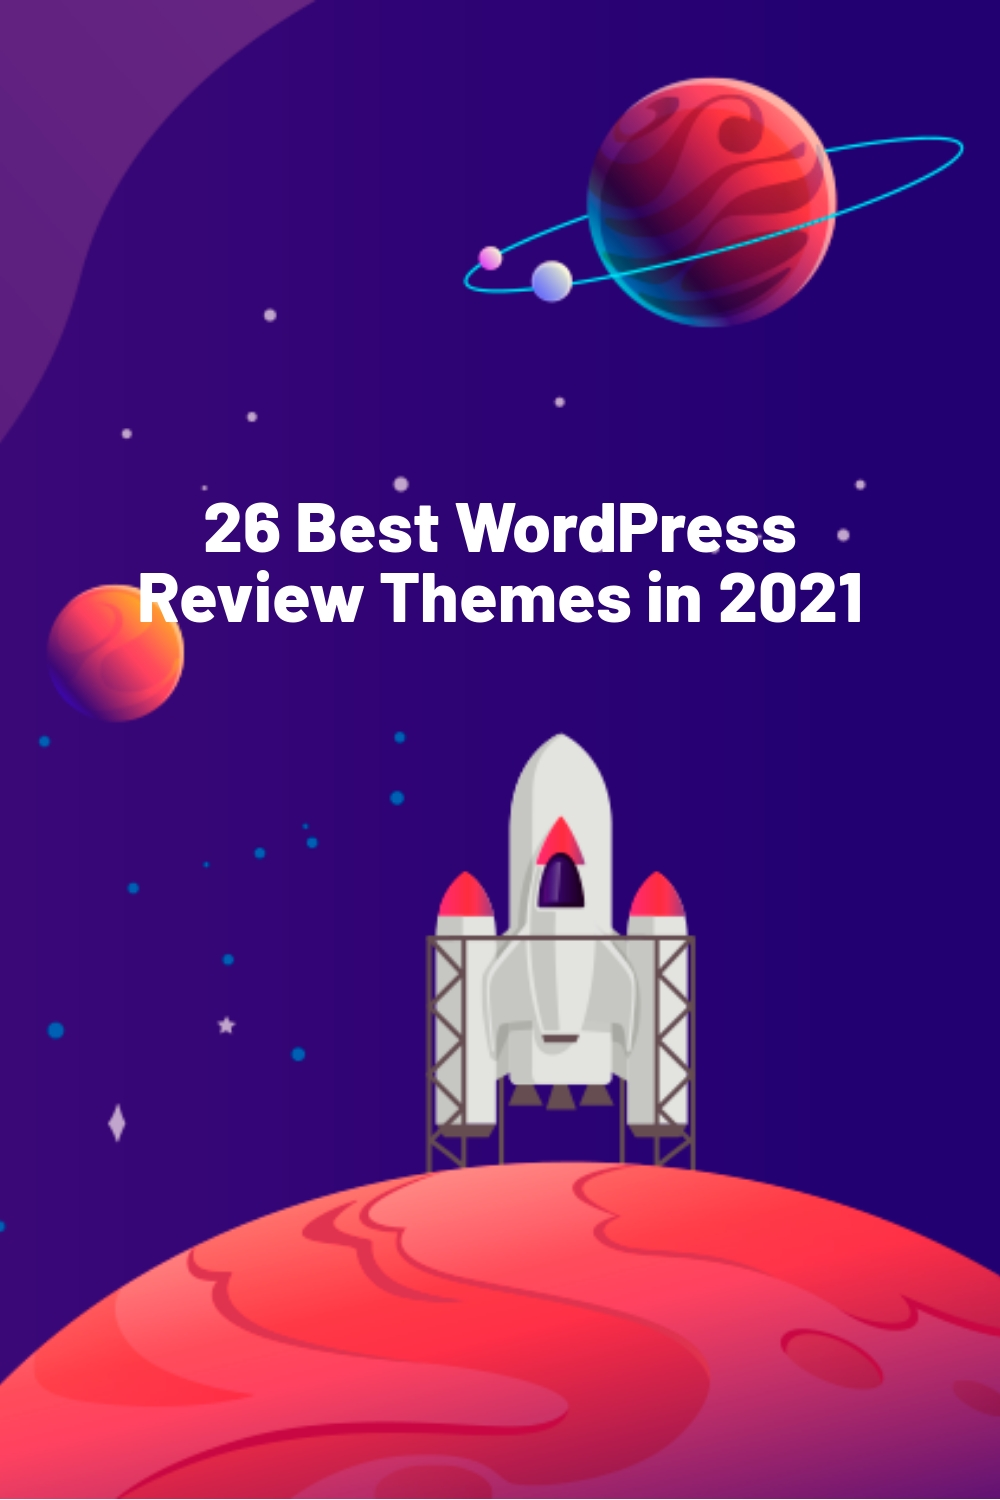 26 Best WordPress Review Themes in 2021